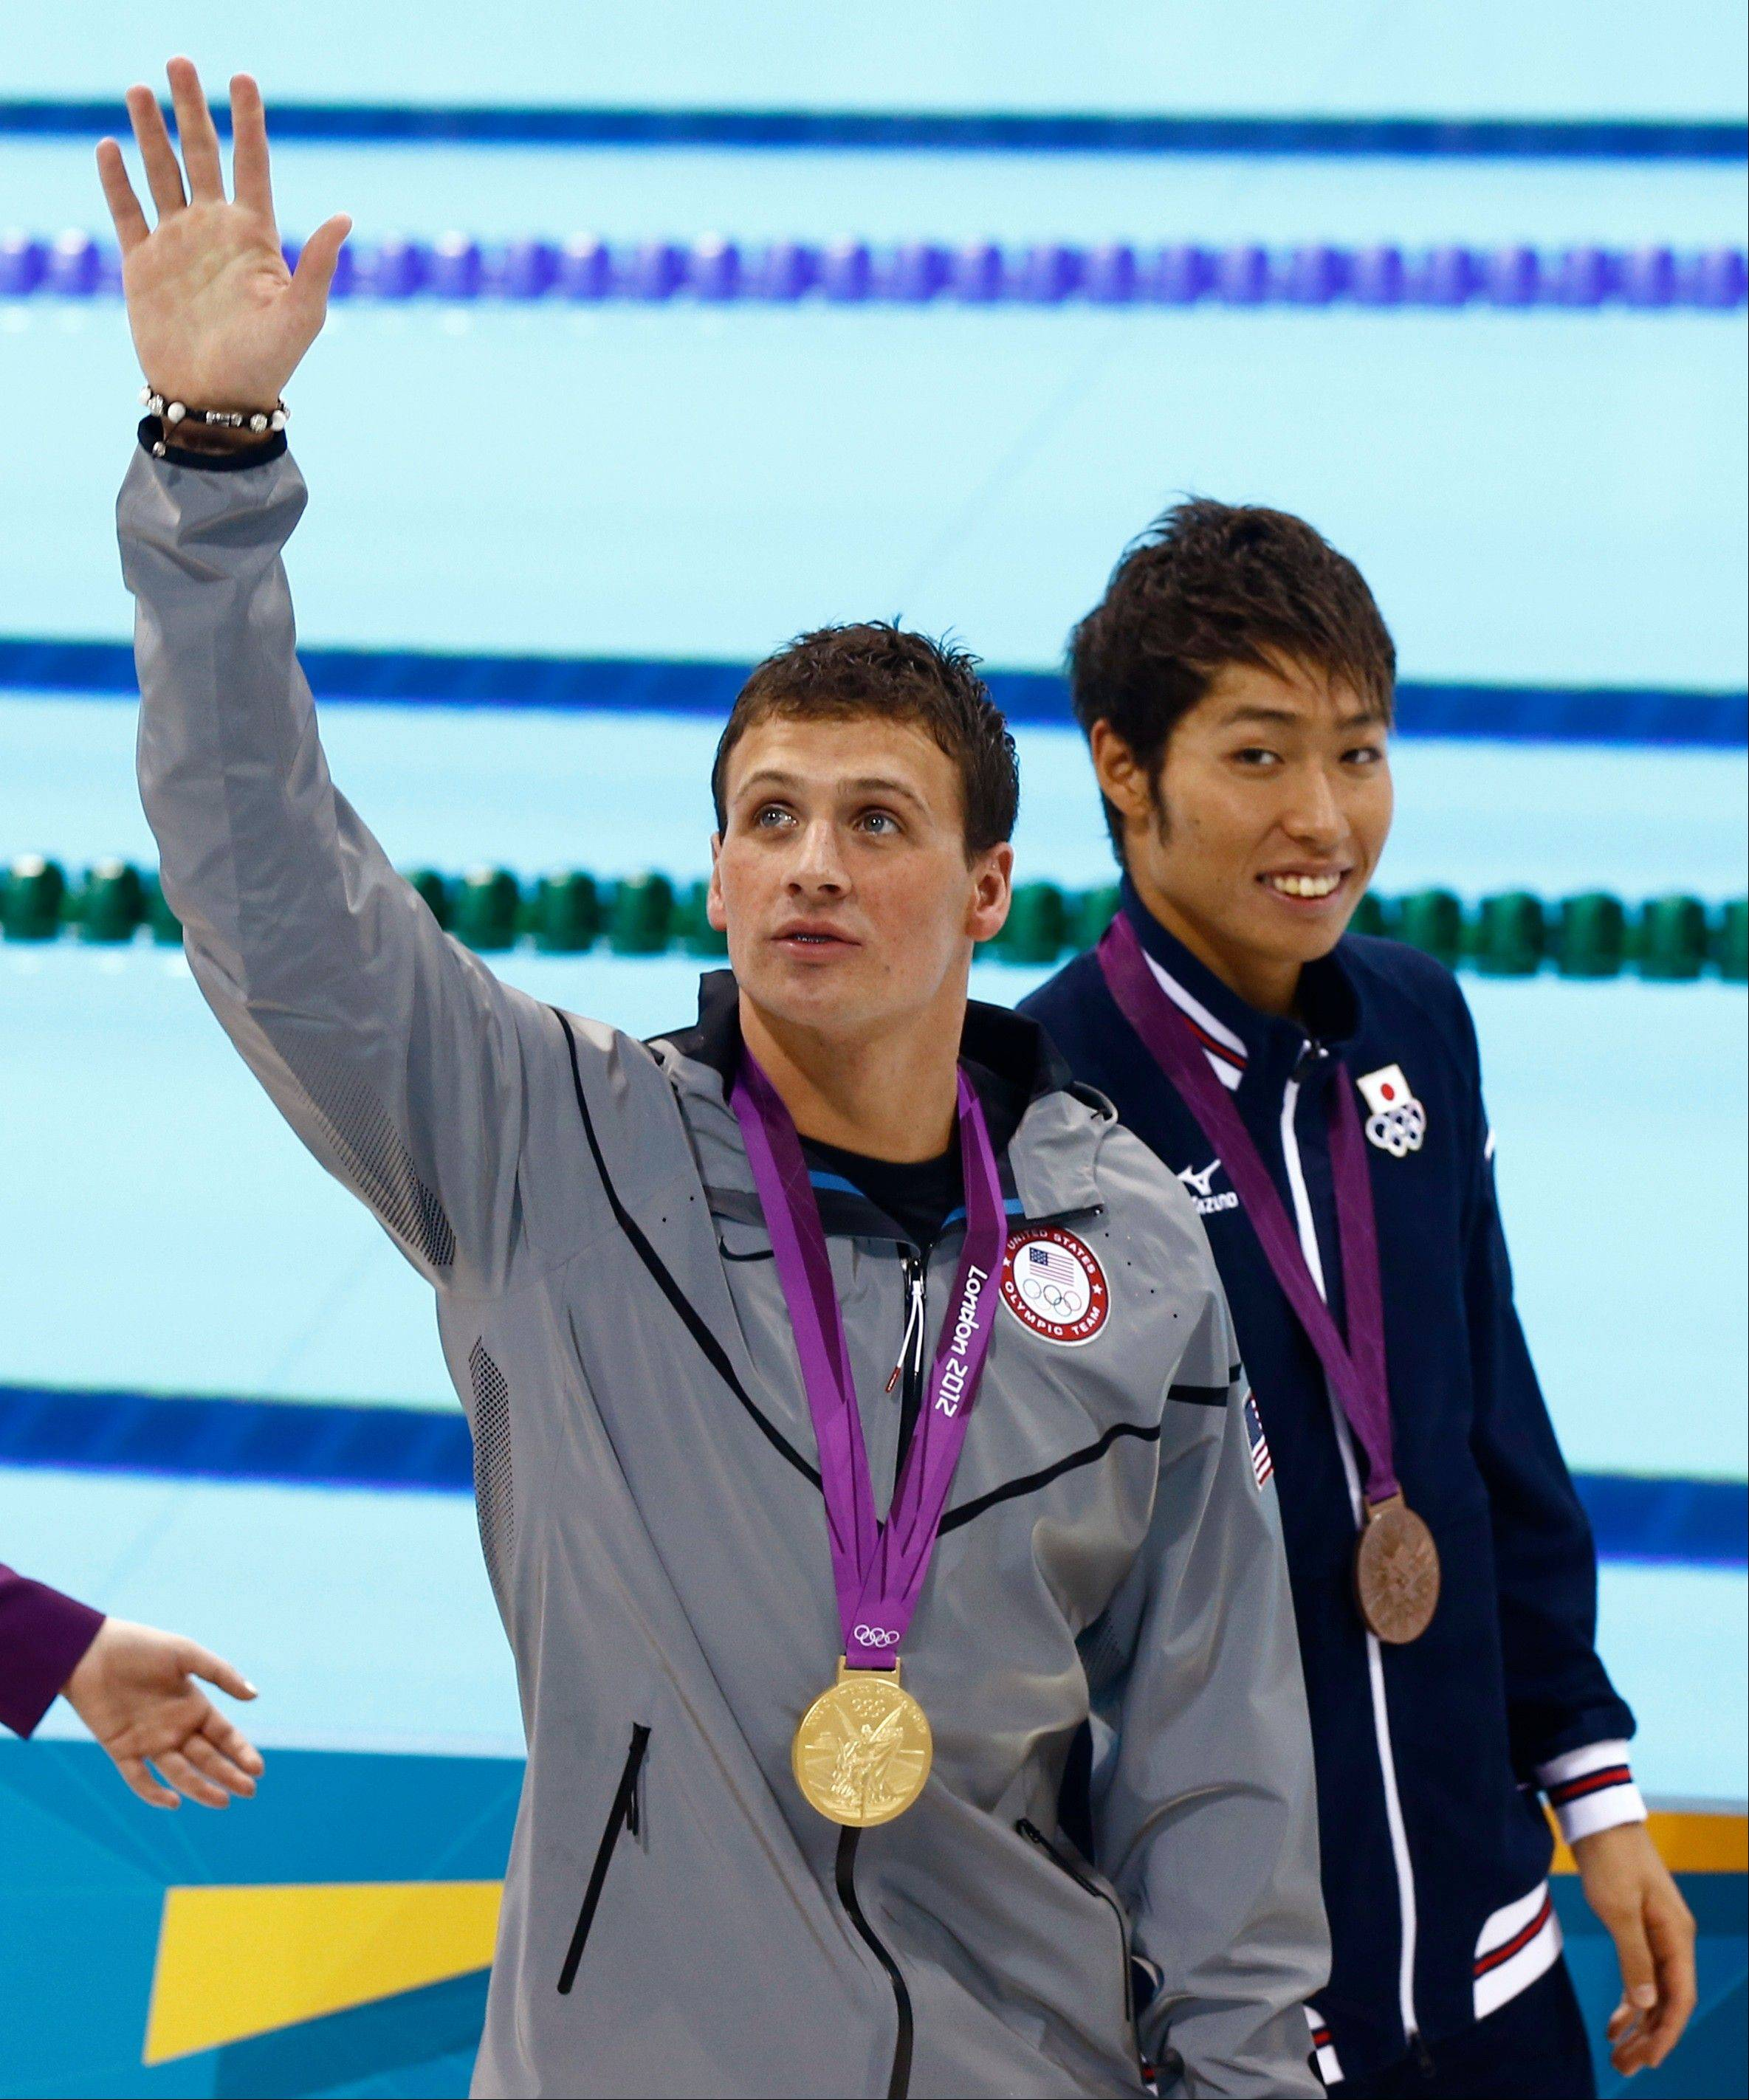 Lochte wins first U.S. gold in London